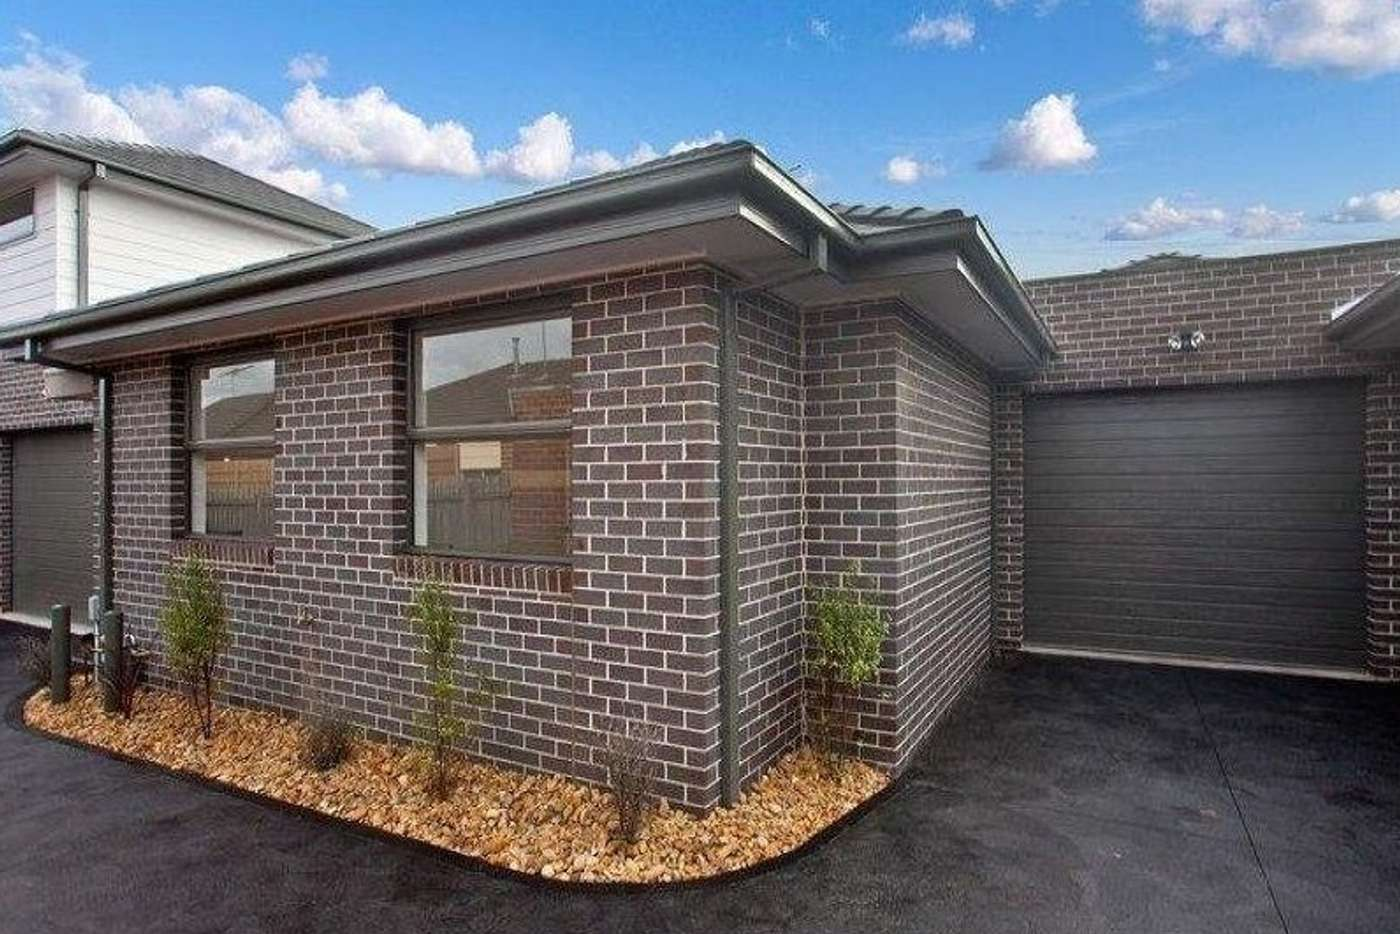 Main view of Homely house listing, 3/40 Mcnamara Avenue, Airport West VIC 3042